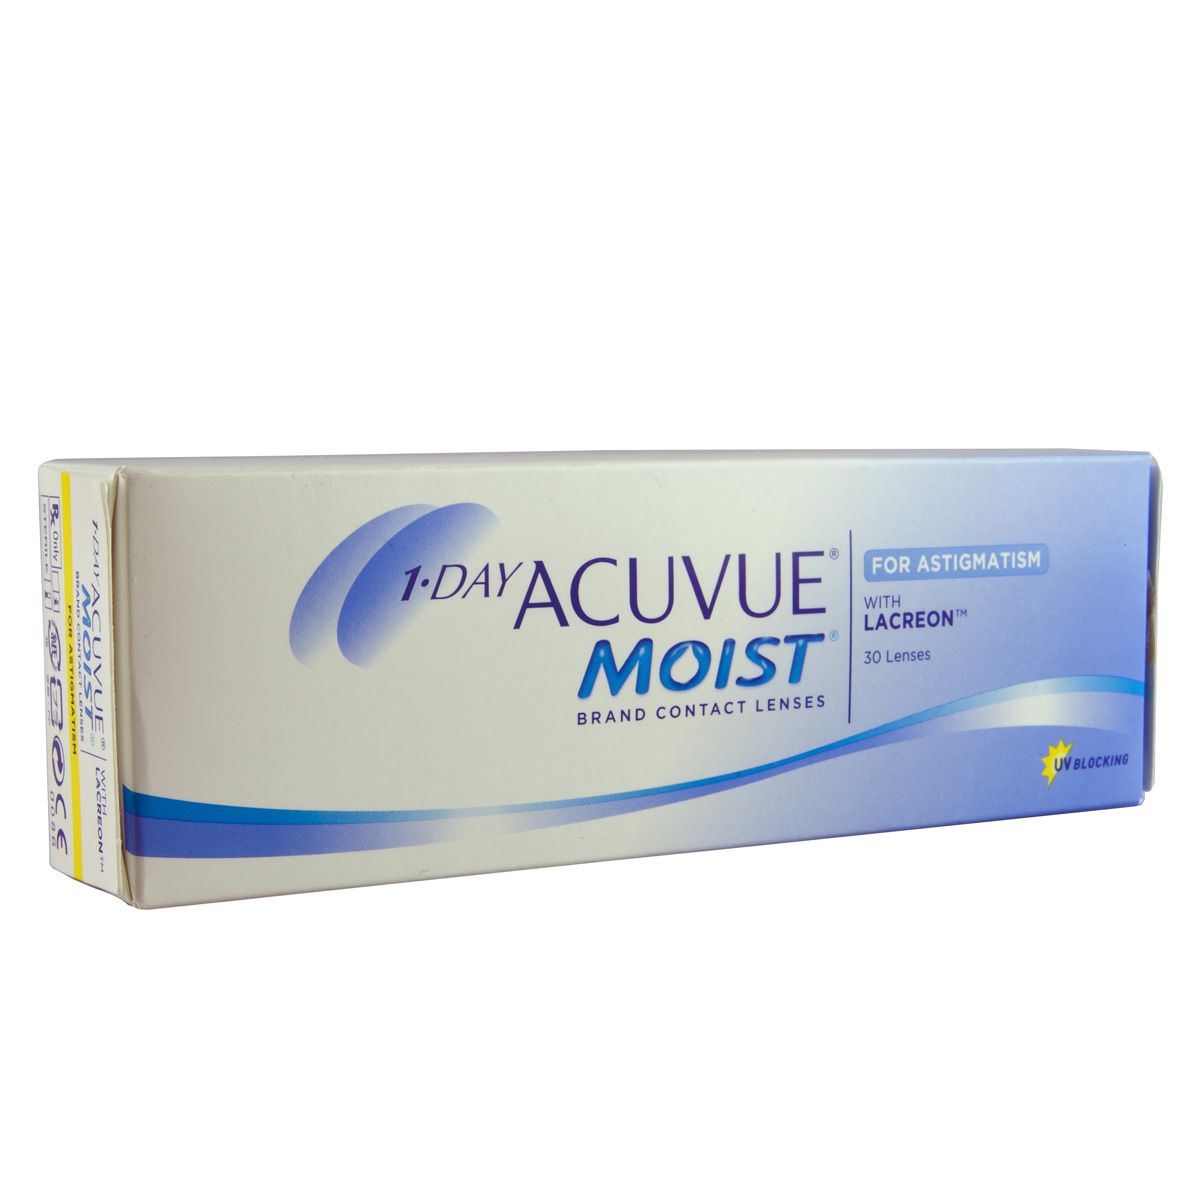 Contact lenses 1 Day Acuvue Moist for Astigmatism (30 lenses)